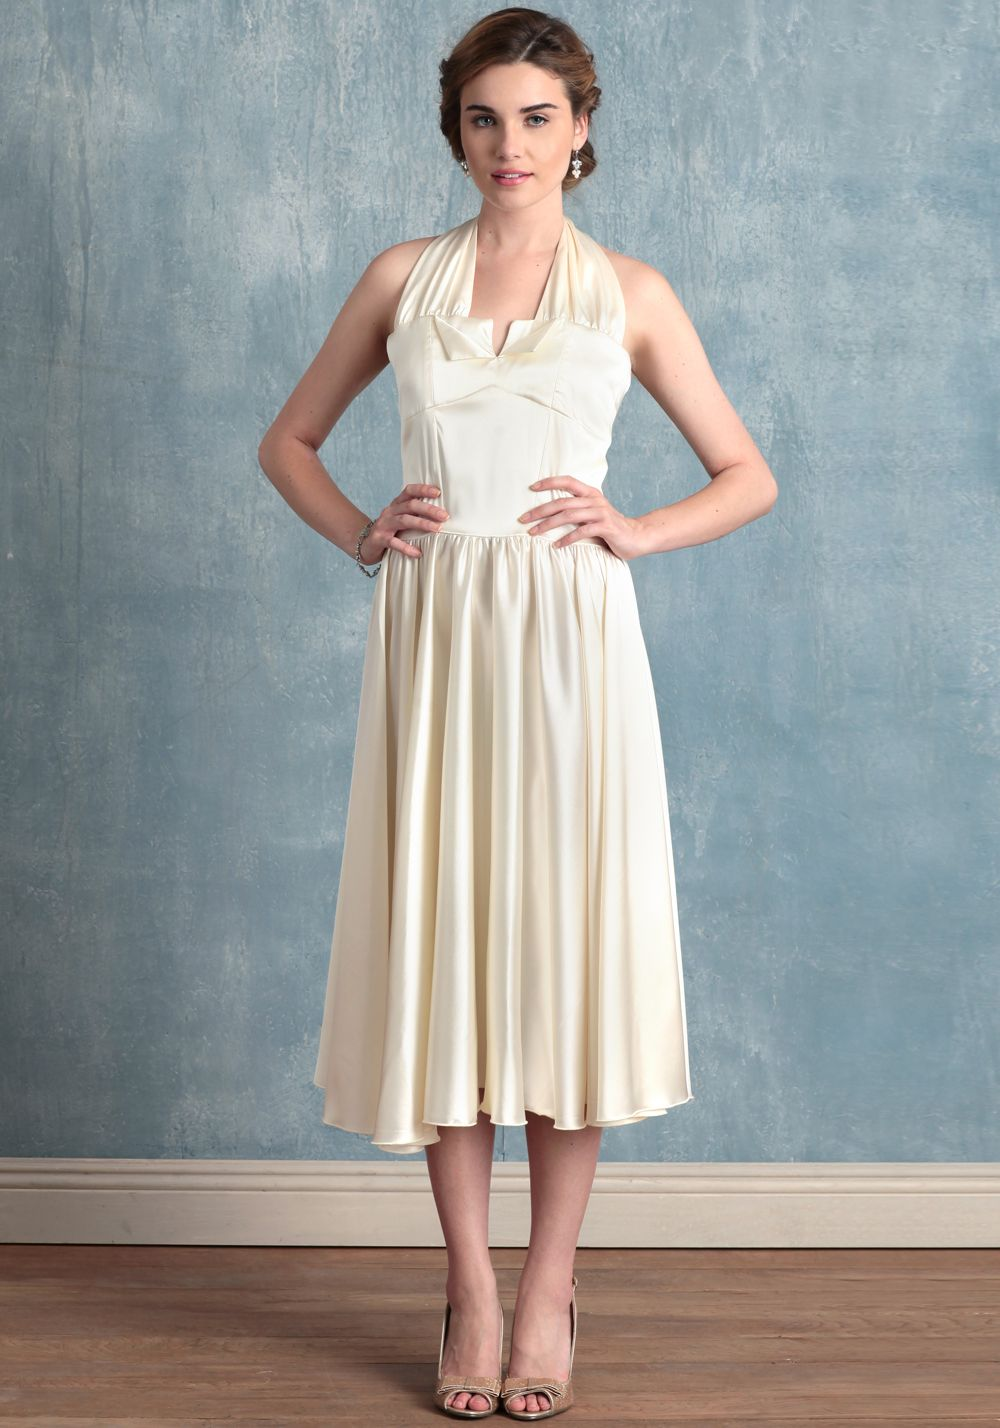 "Perfect for the vintage-loving bride, this cream satin wedding dress is polished with a sophisticated halter neck, a classic circle skirt for graceful movement, and a demure split neckline. Finished with delicate gathers at the waist for added fullness and a back zipper closure. Fully lined.  100% Polyester, Made in USA, 47"" length from top of shoulders, 34"" bust, 28"" waist, All measuremen..."